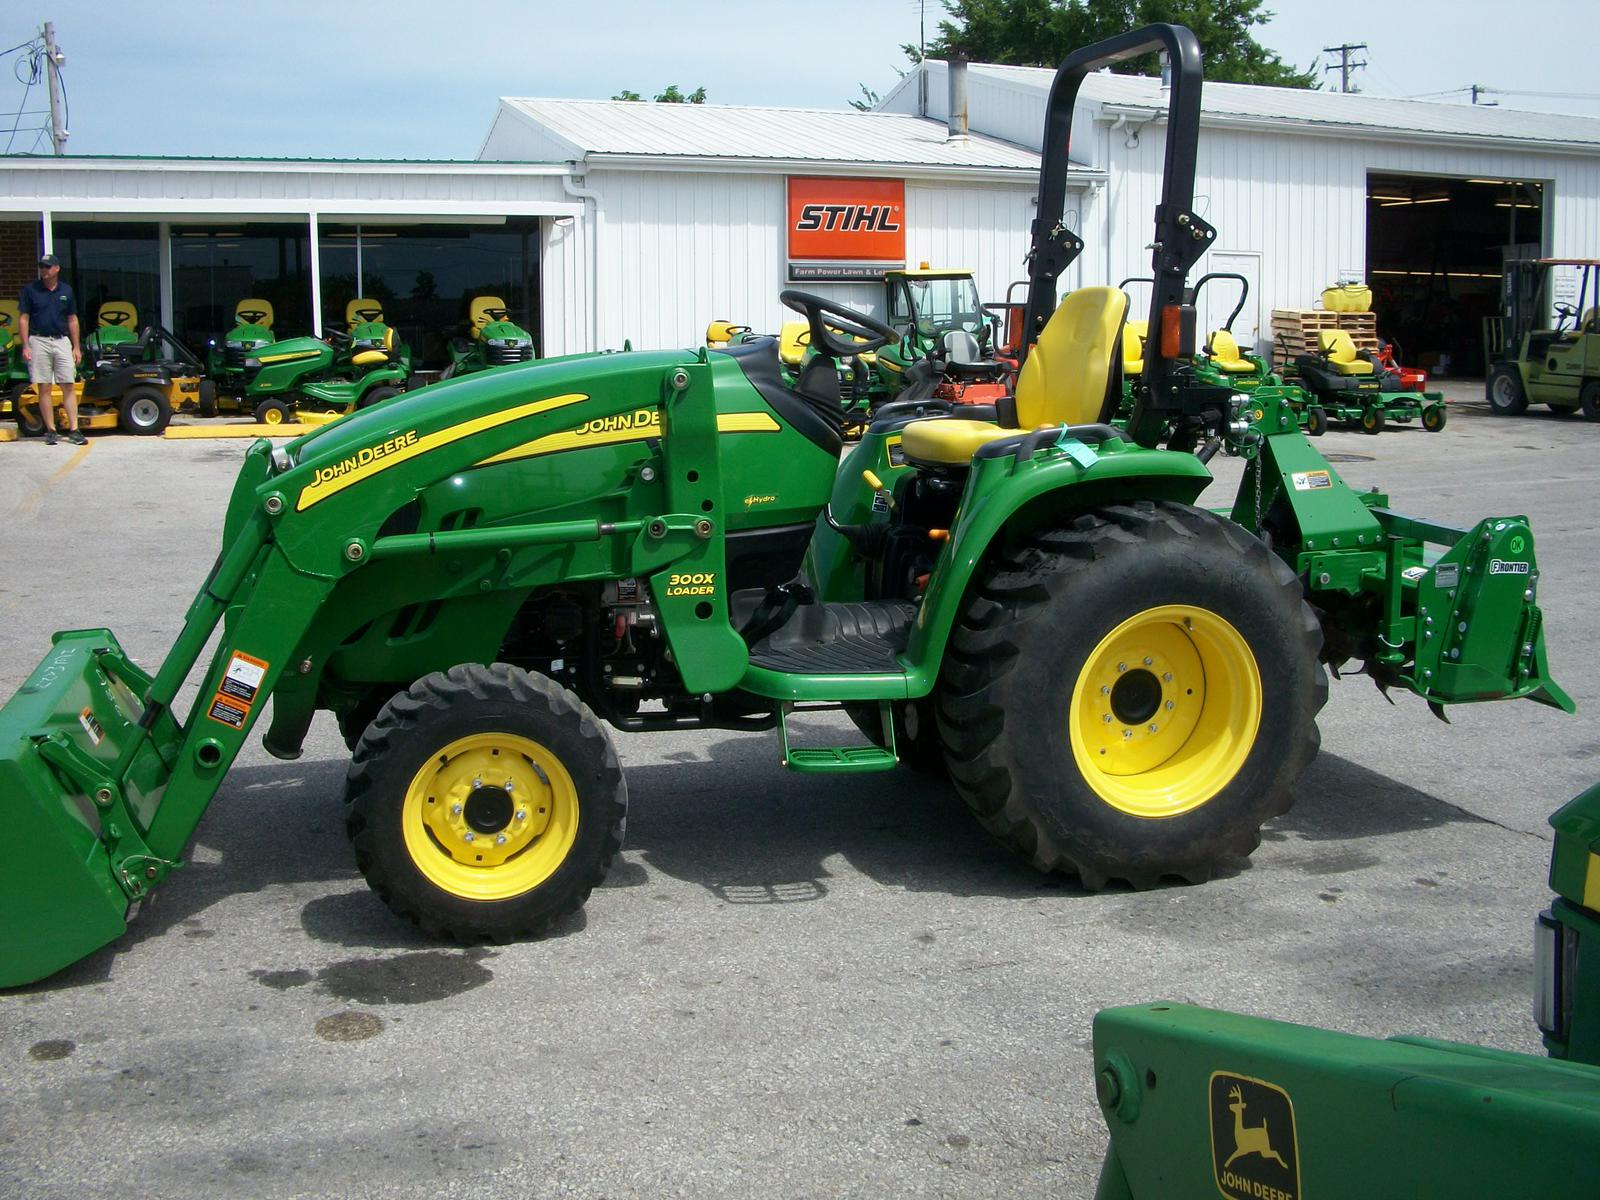 2012 John Deere 3000 Series 3520 Oos For Sale In Columbia Mo Farm Ignition Switch Wiring Diagram 004